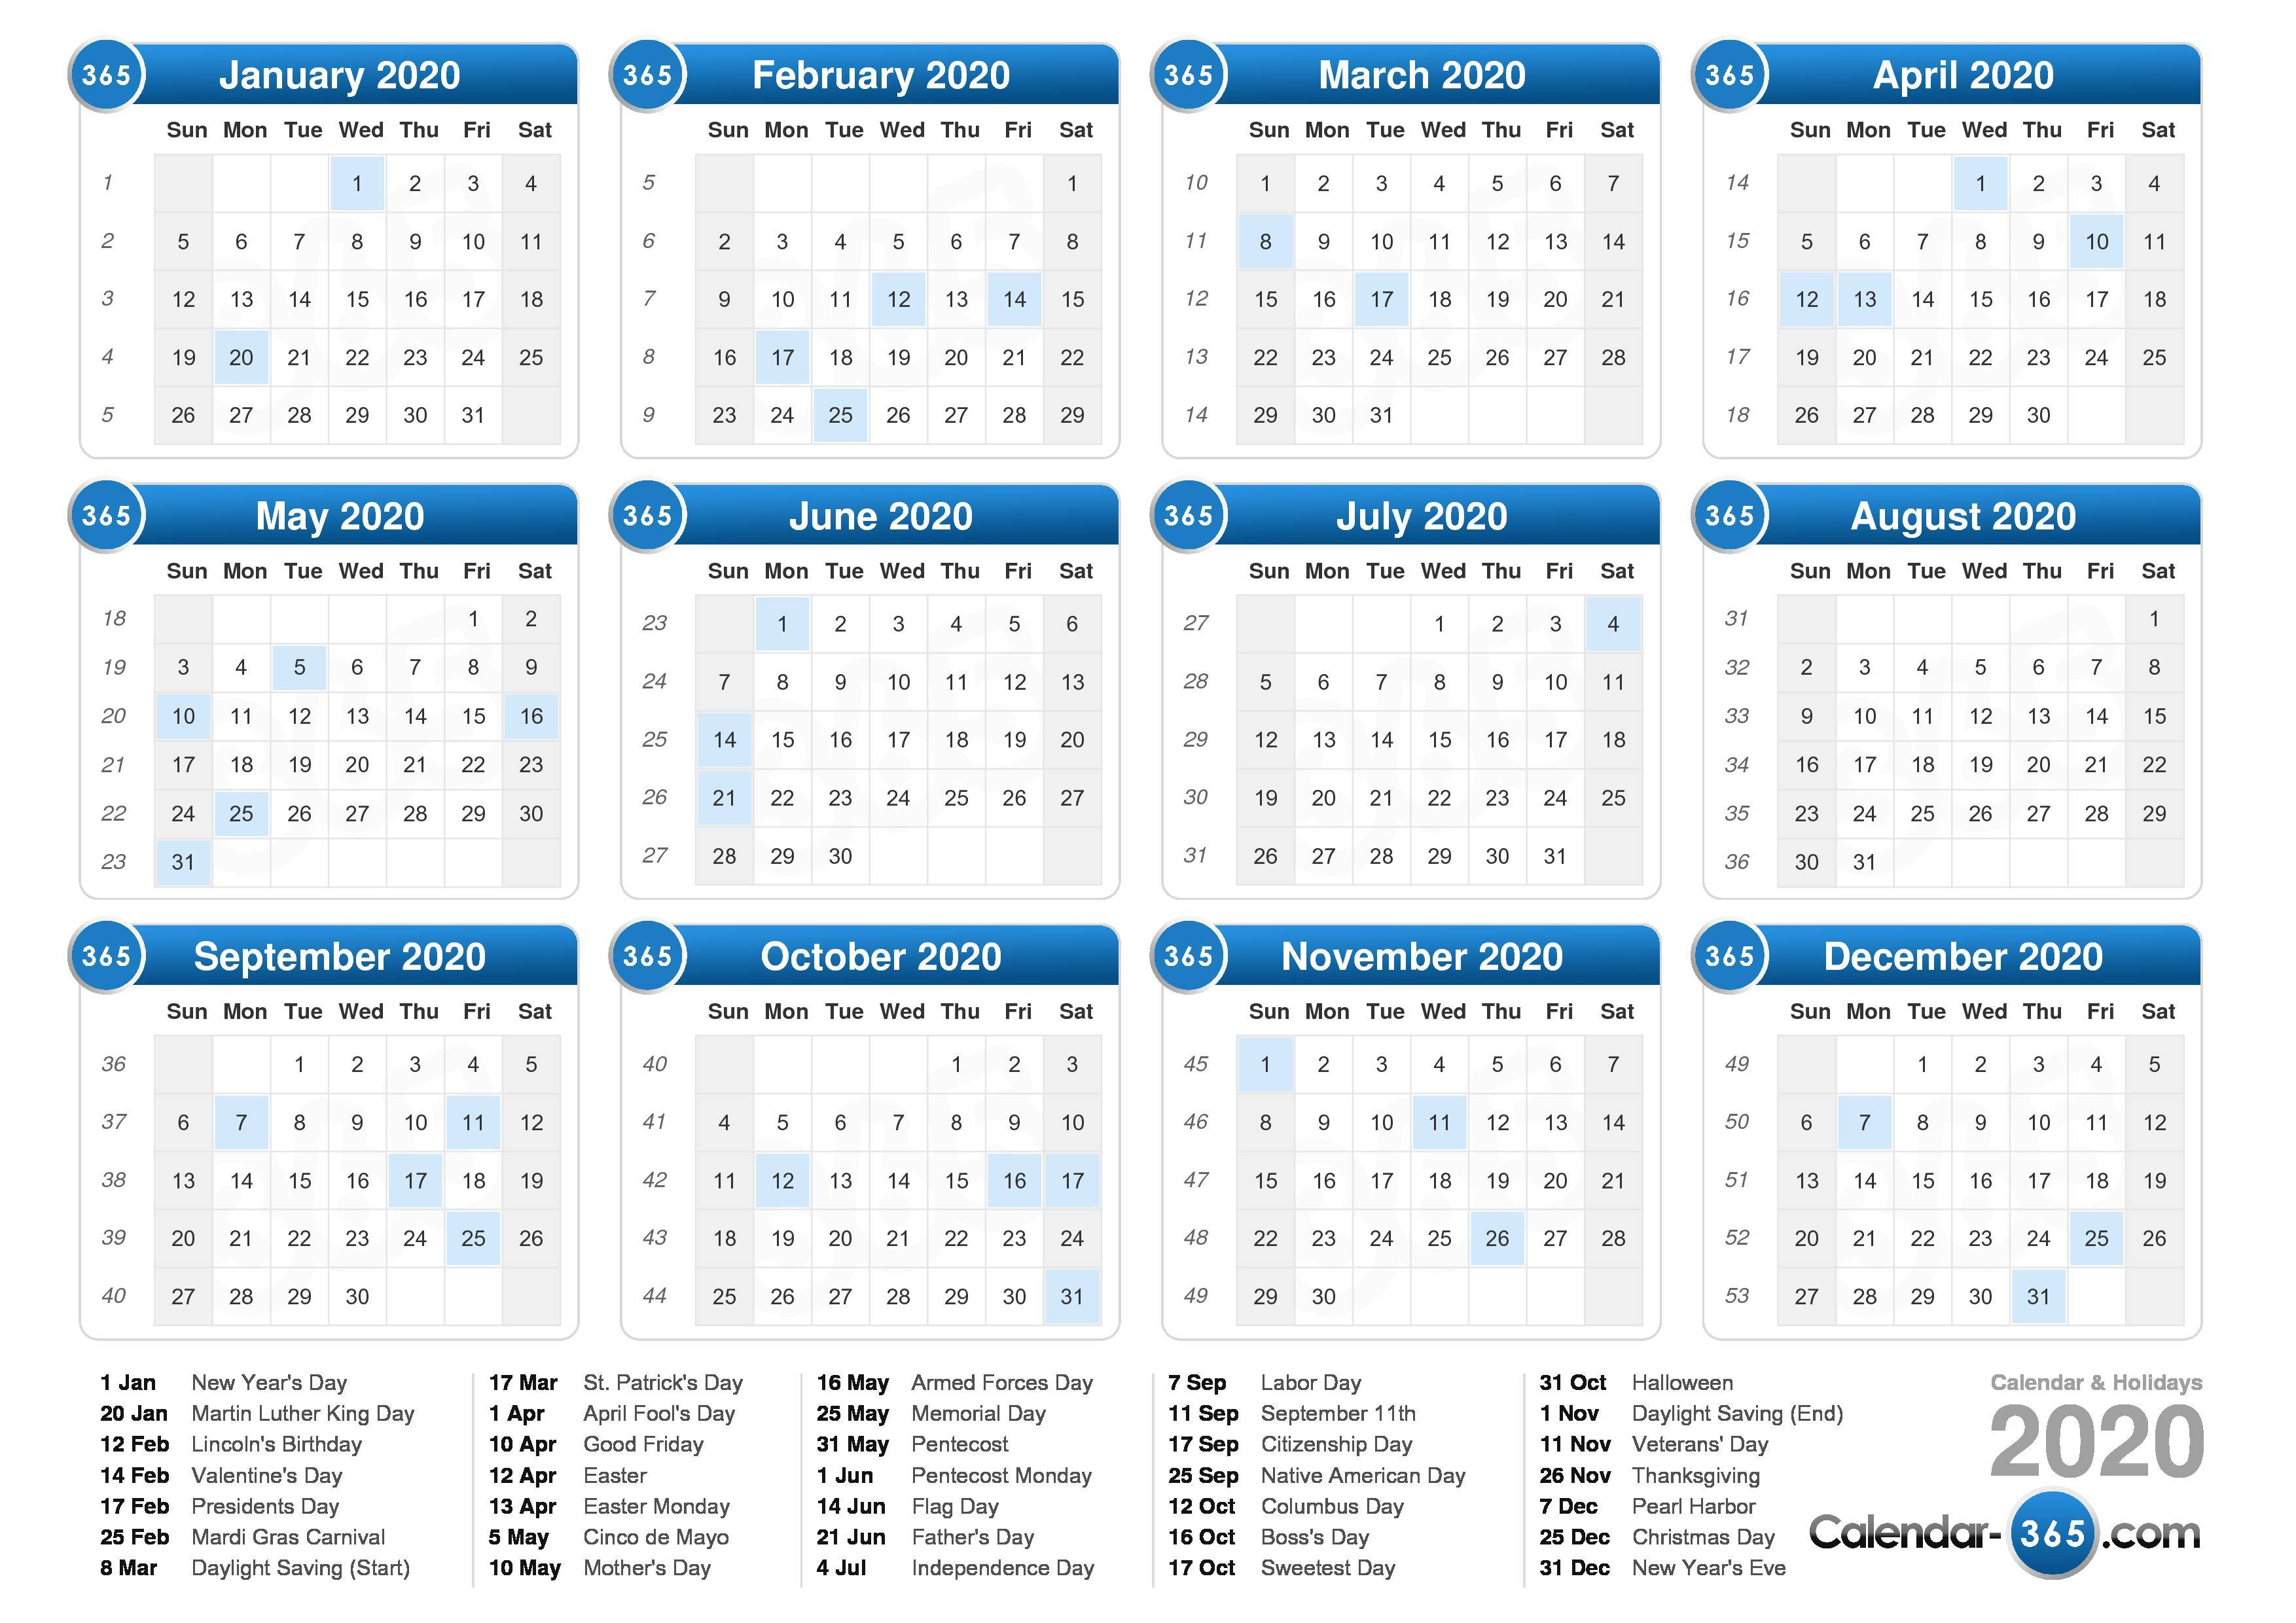 2020 Calendar pertaining to 2020 Calendars To Fill In